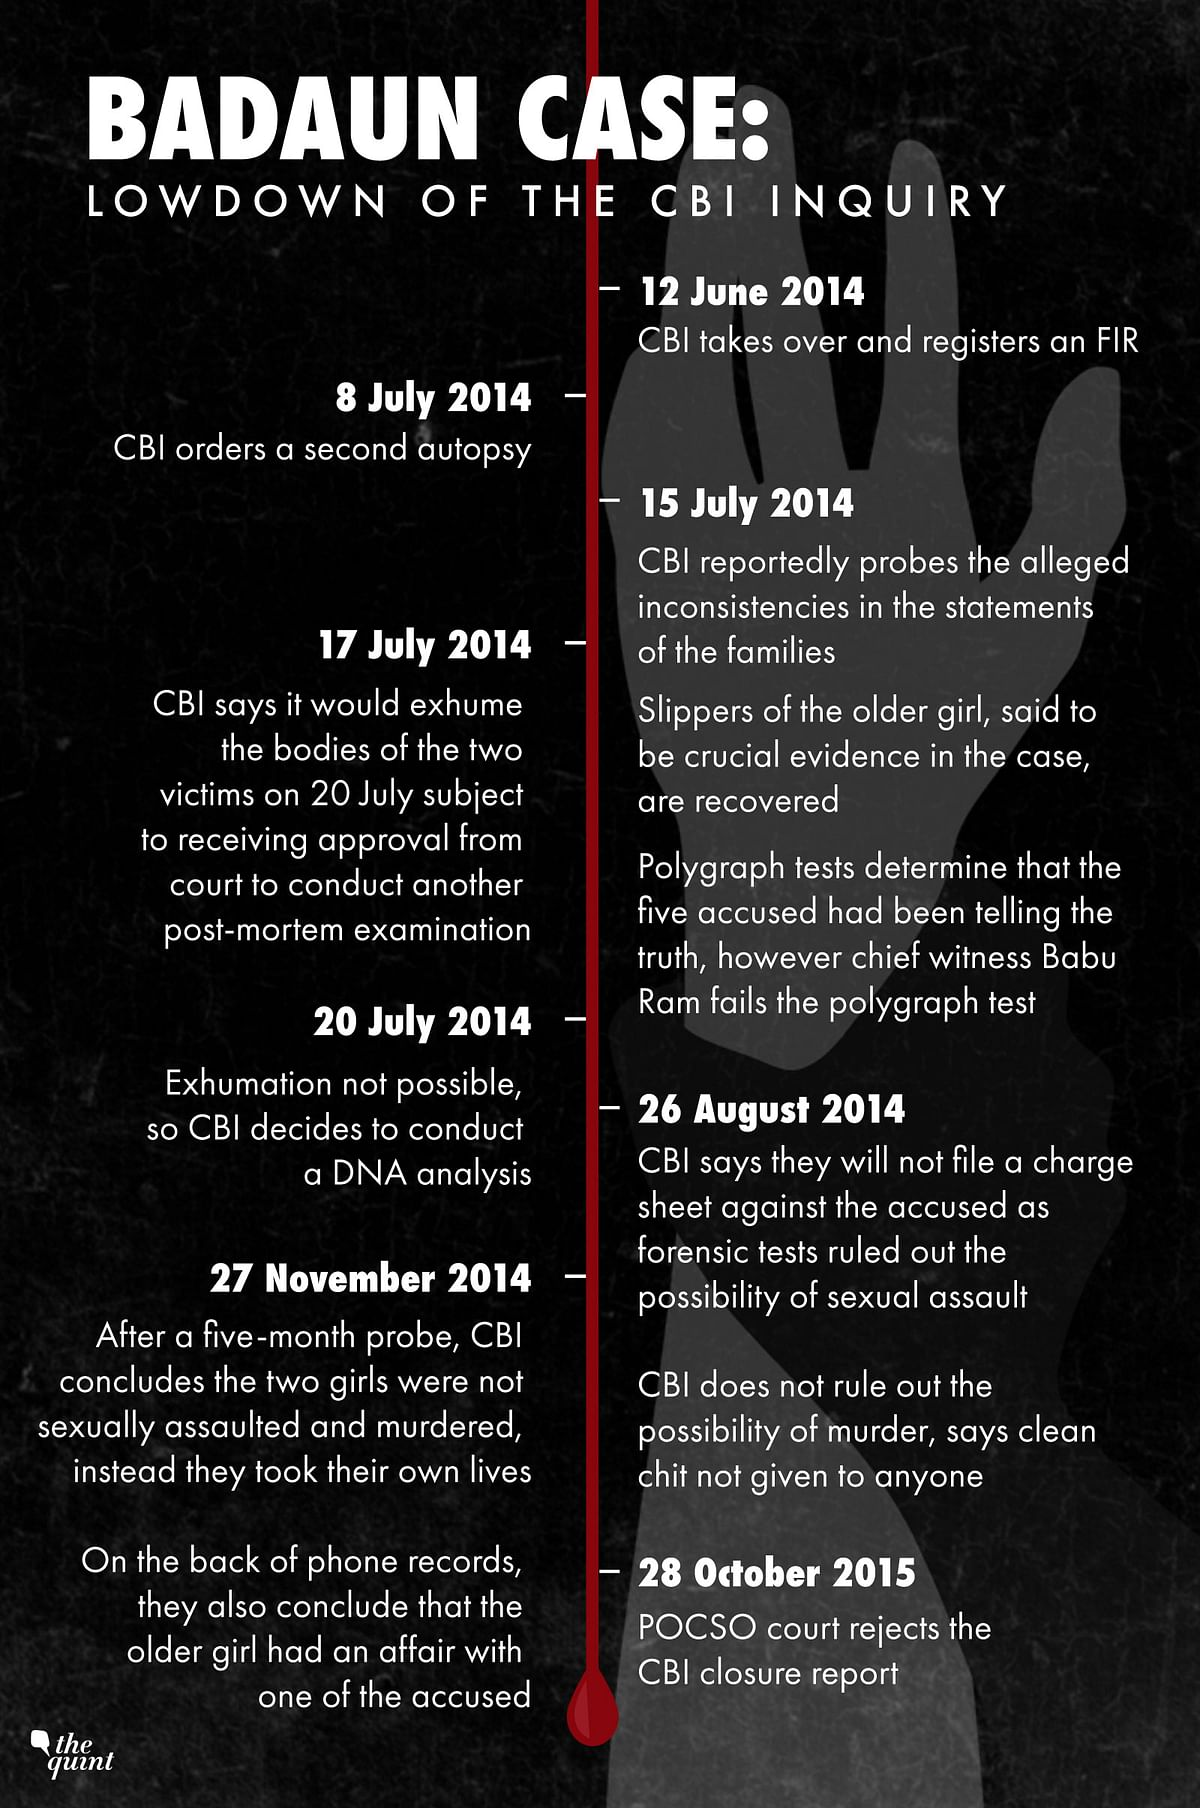 Timeline of events when CBI was in charge.